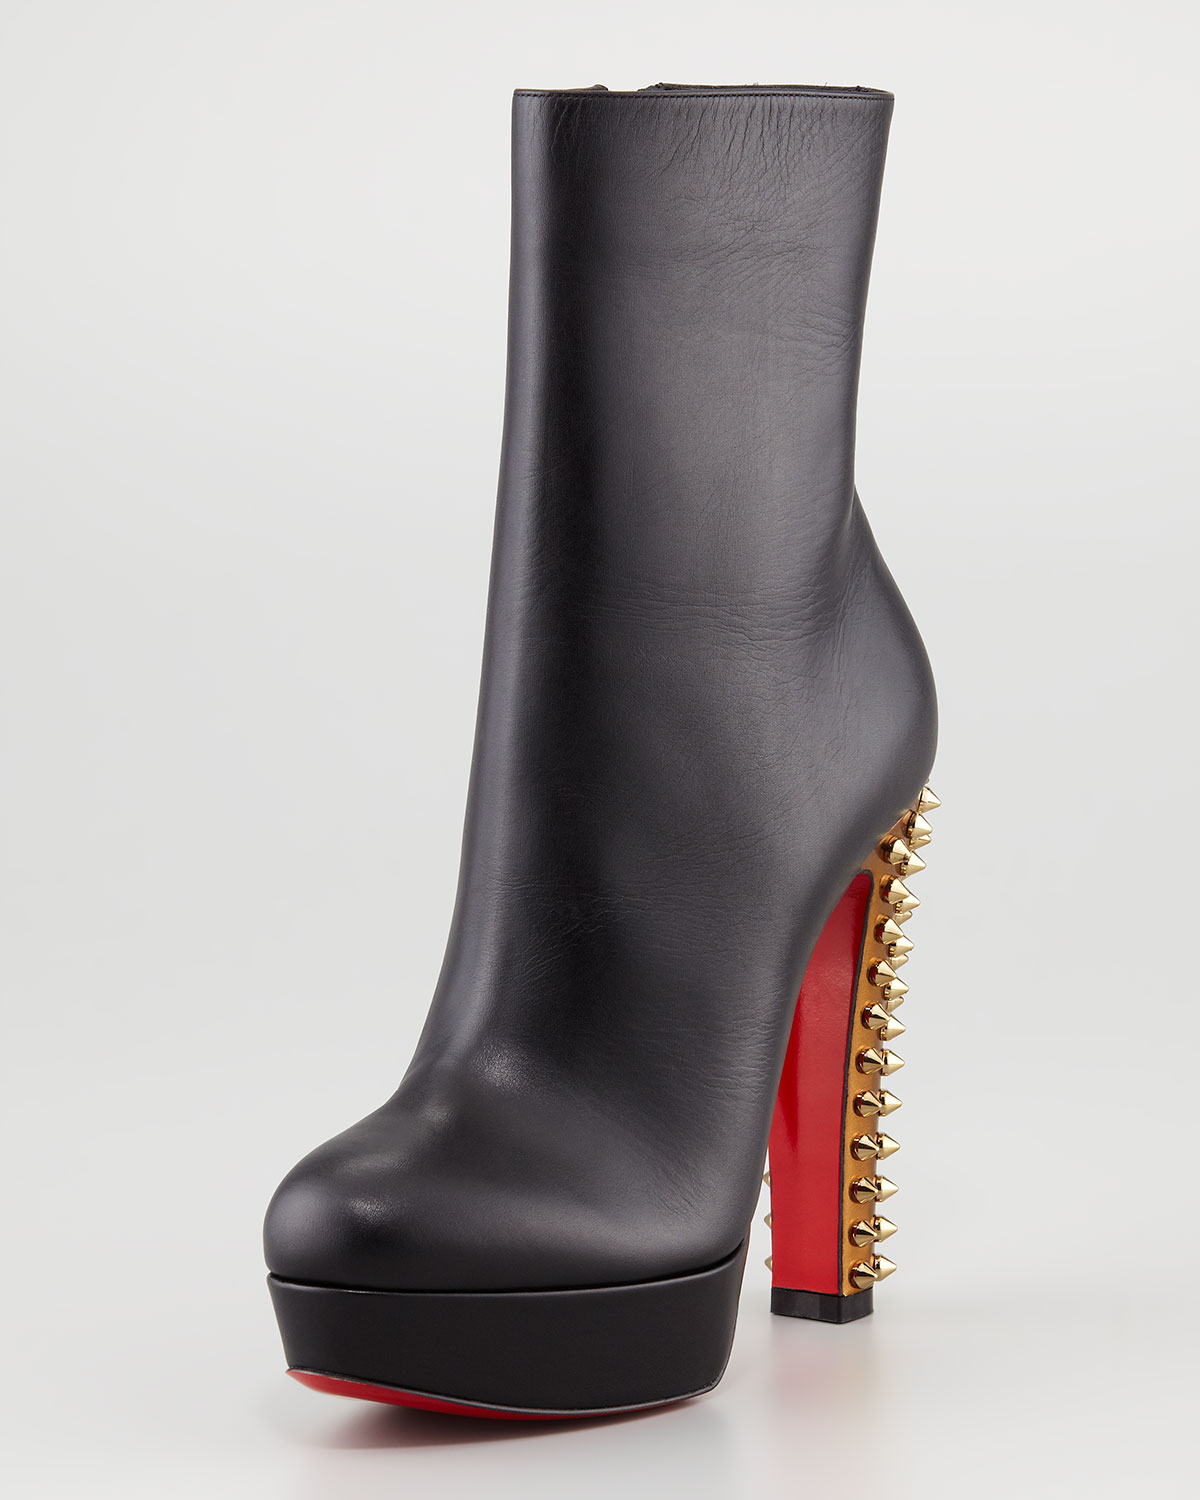 Lyst Christian Louboutin Taclou Spiked Heel Red Sole